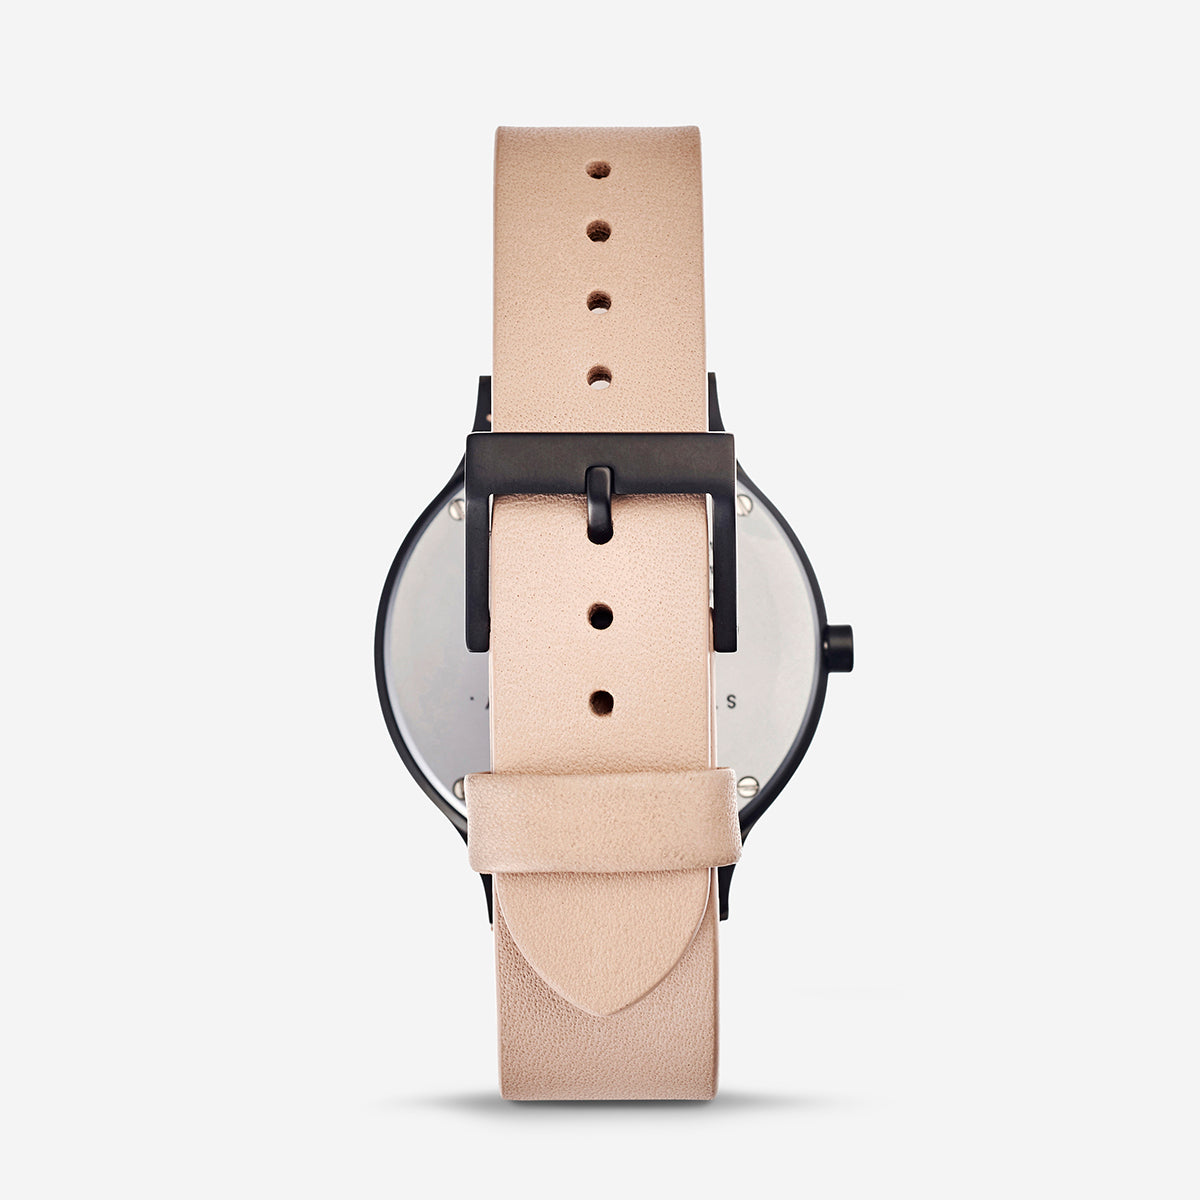 Status Anxiety Inertia Leather Unisex Watch - Matte Black/White Face/Natural Strap